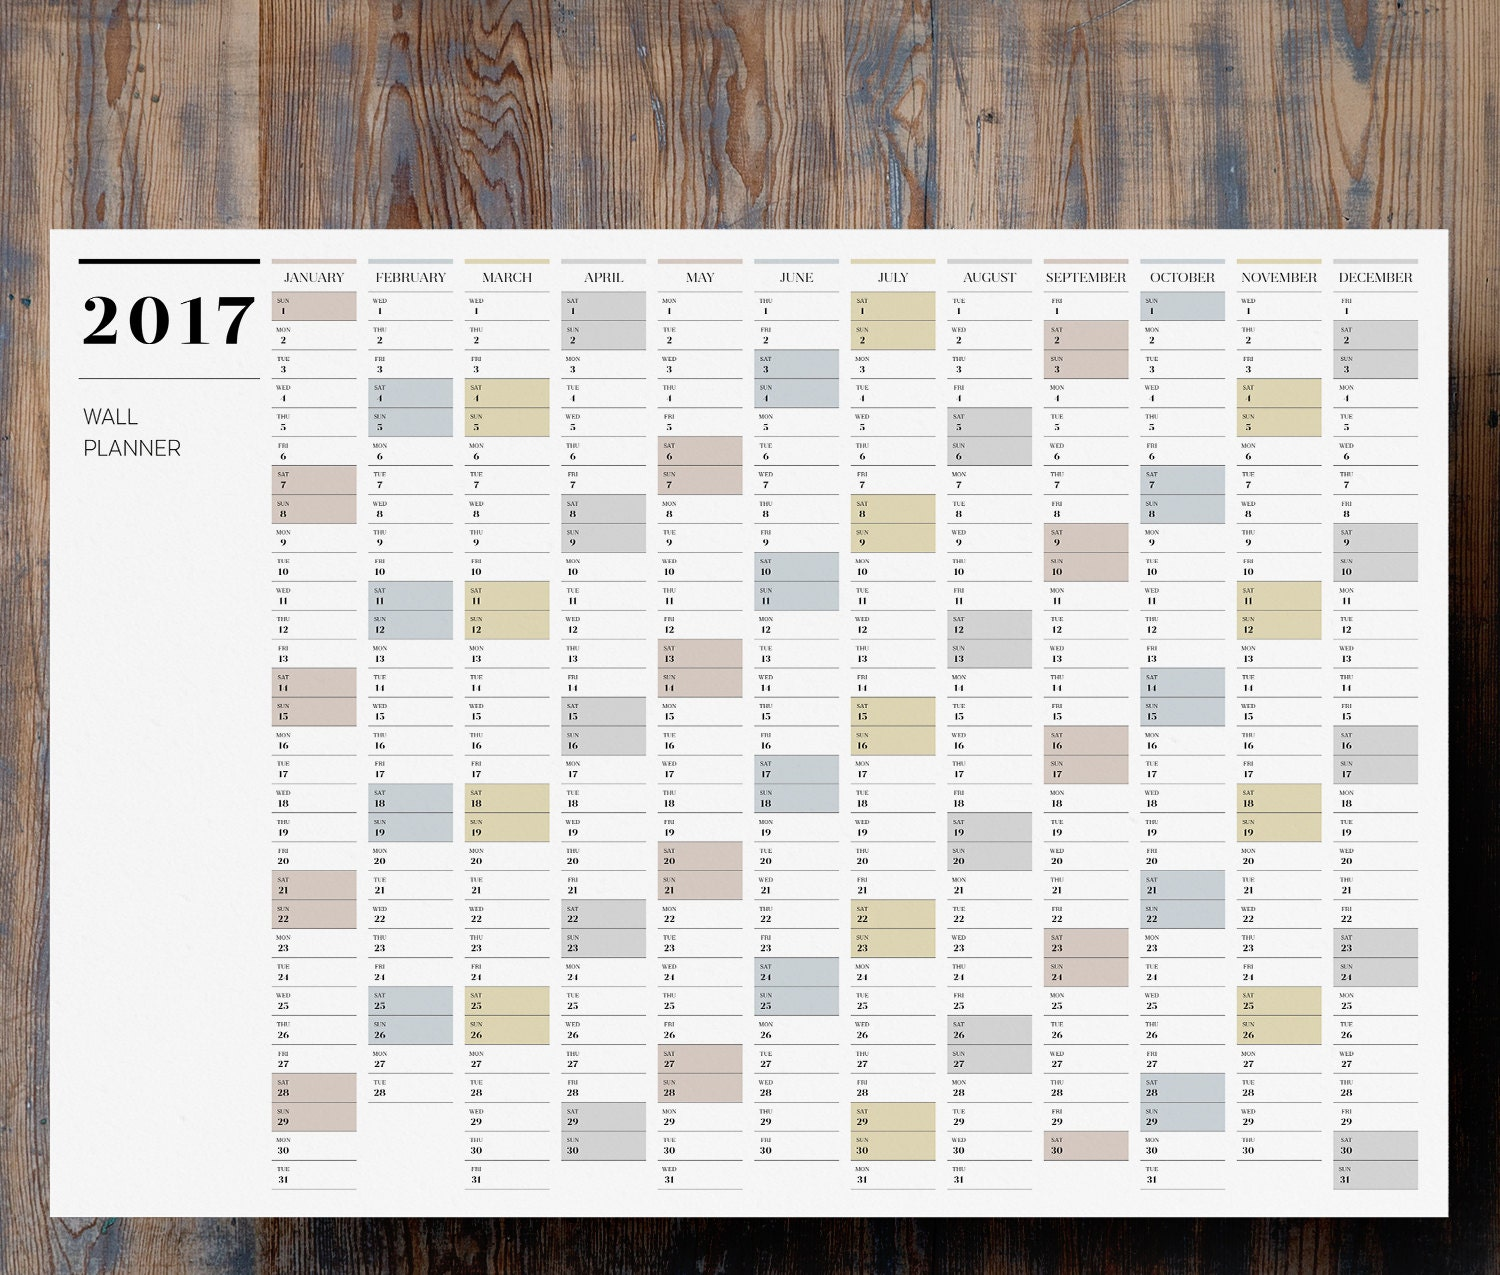 ... PDF A2 Wall Planner 2017 Large Full Year by MaylemMade | Etsy